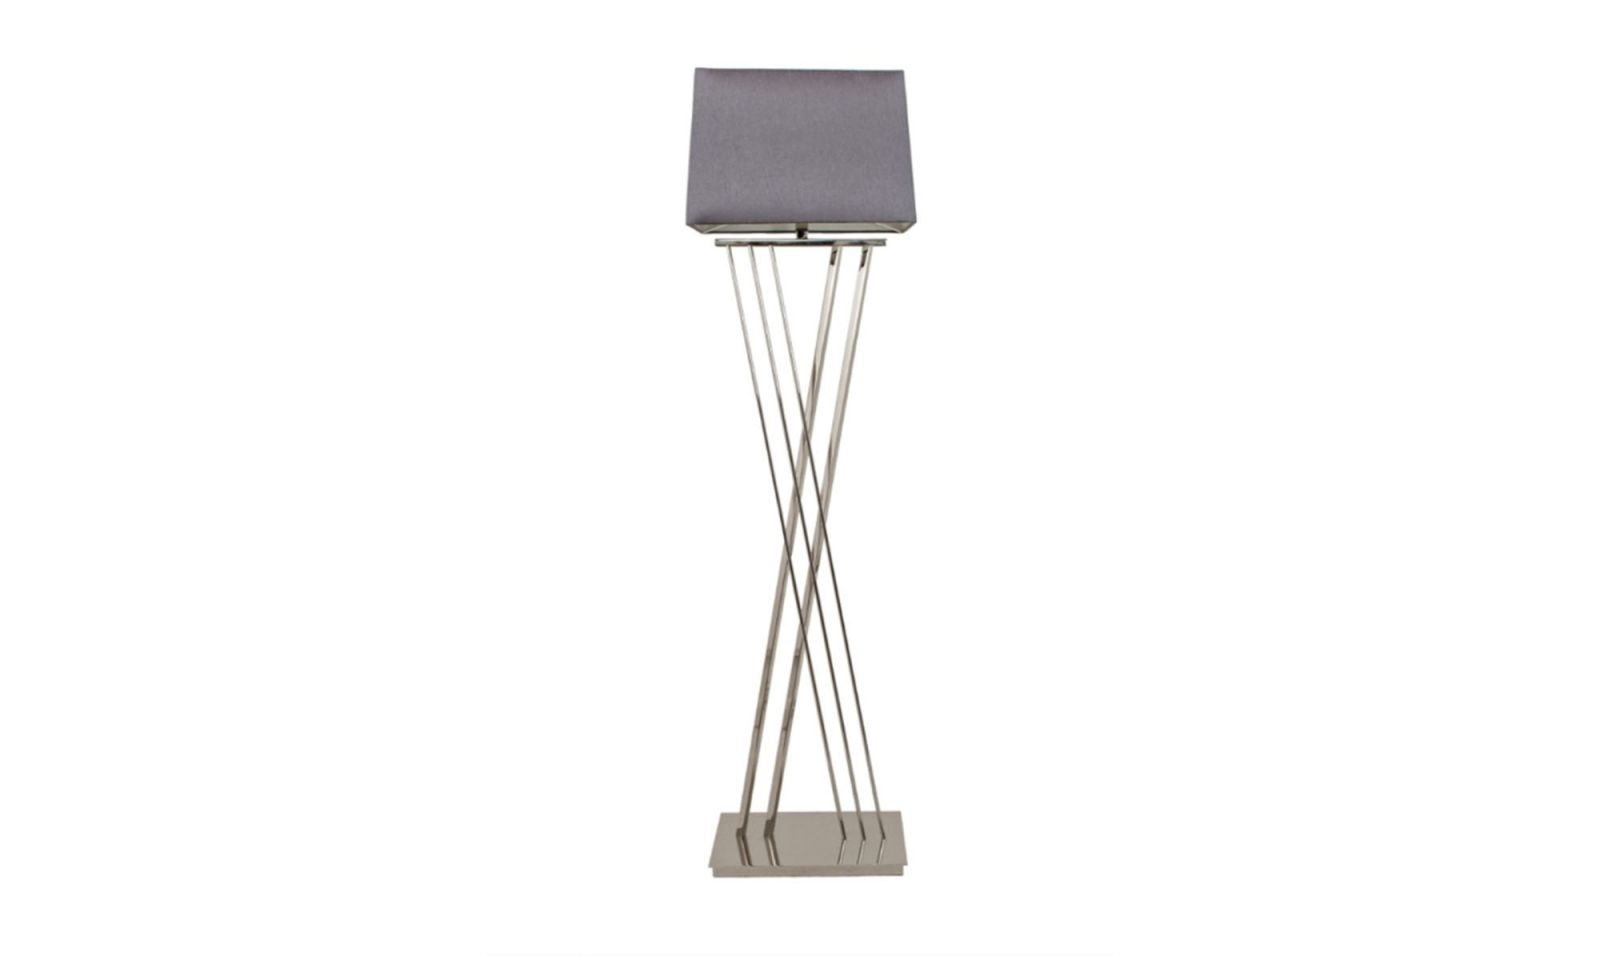 Sweet Shades Fishpools Recycled Lamp Mommo Design